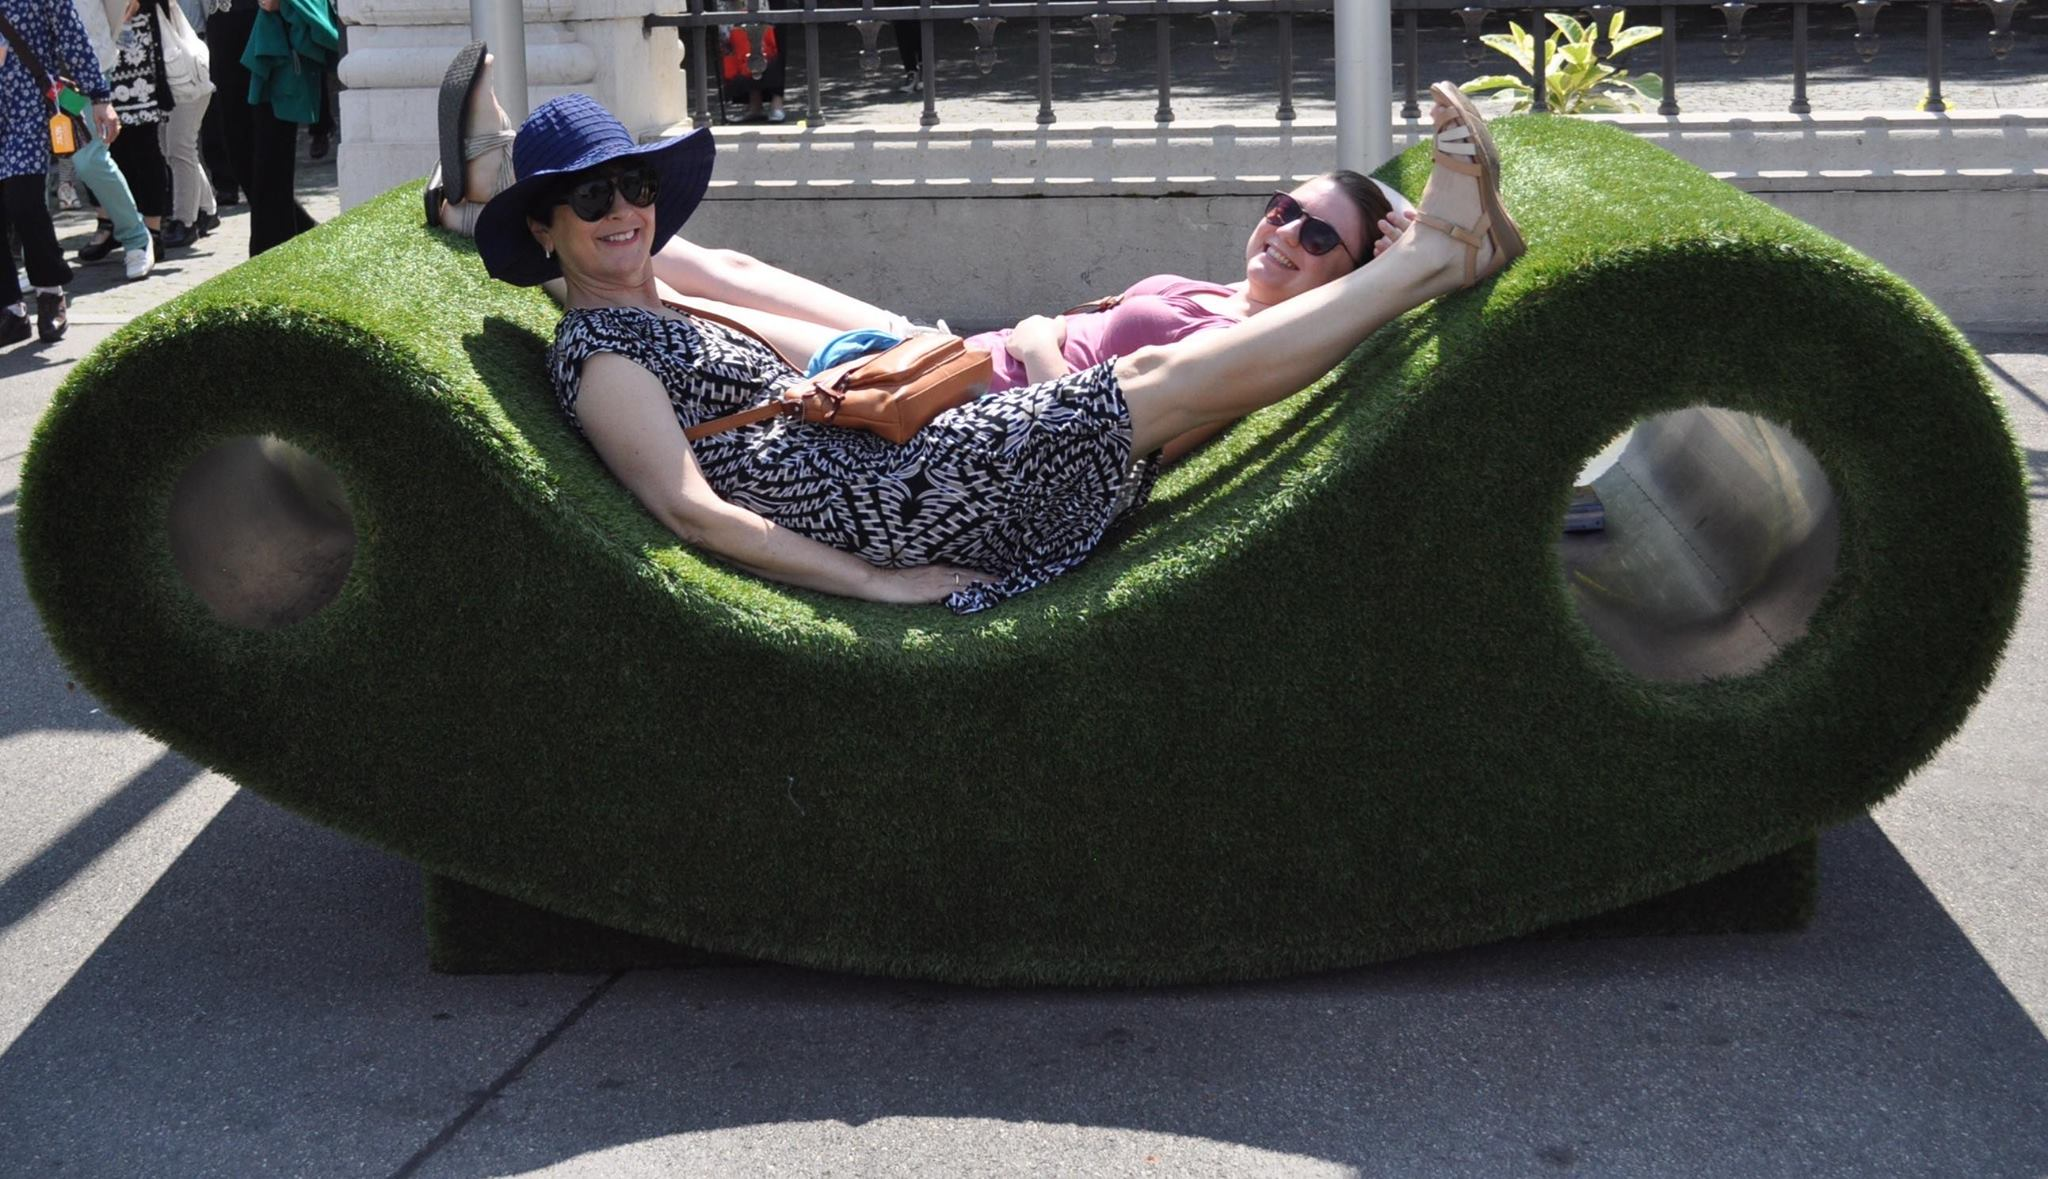 As mentioned, weird turf-covered loungy chair thingy-ma-bobs.